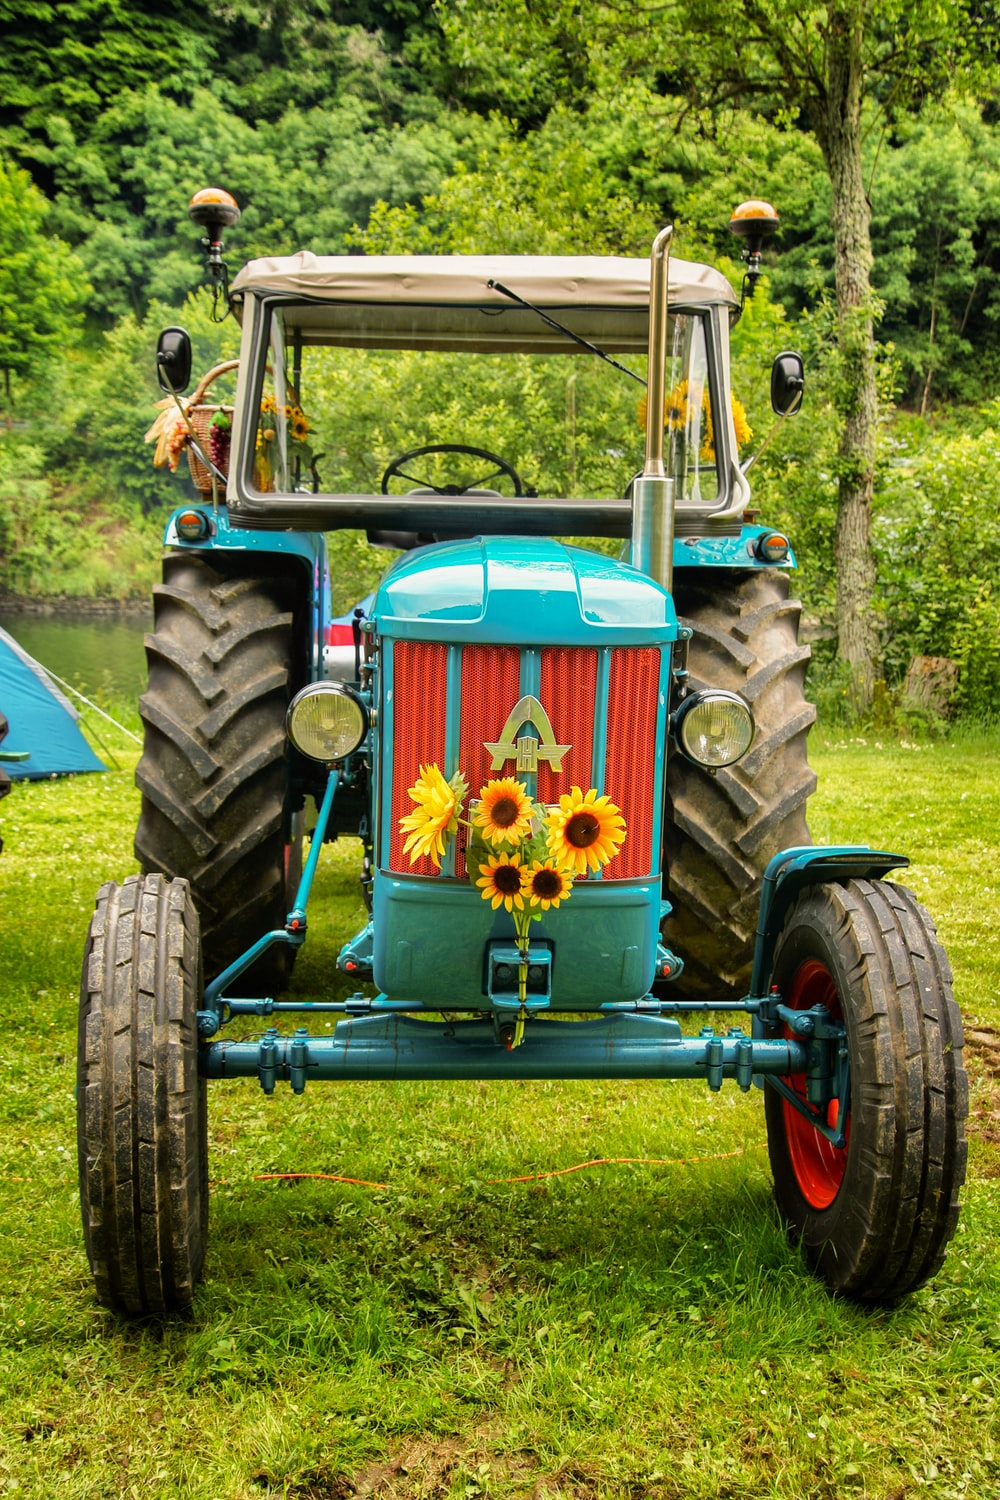 teal and white tractor